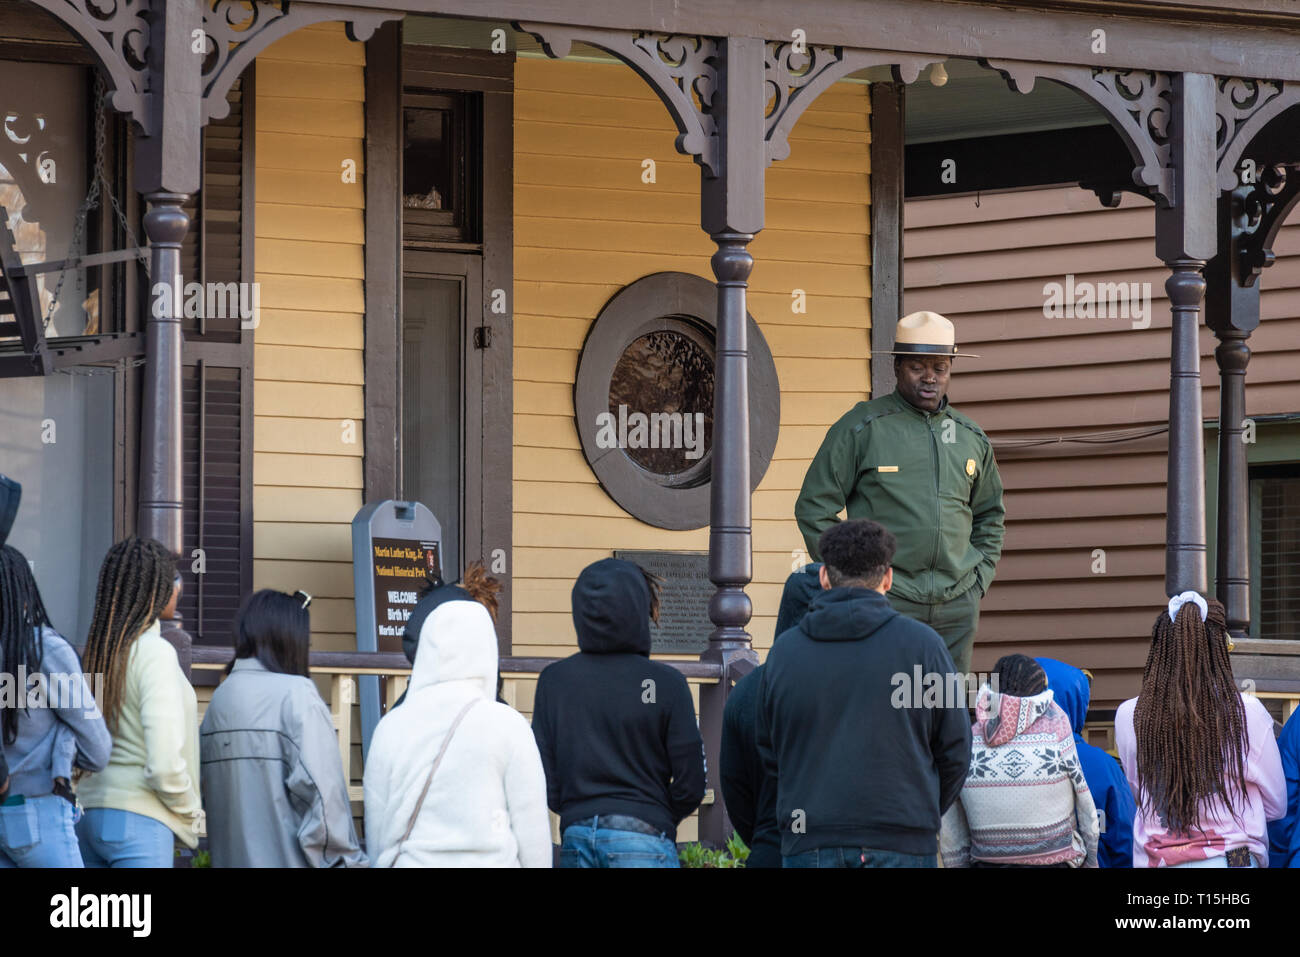 National Park Service ranger speaking with tour group at the birth home of Martin Luther King, Jr. on Auburn Avenue in Atlanta, Georgia. (USA) - Stock Image